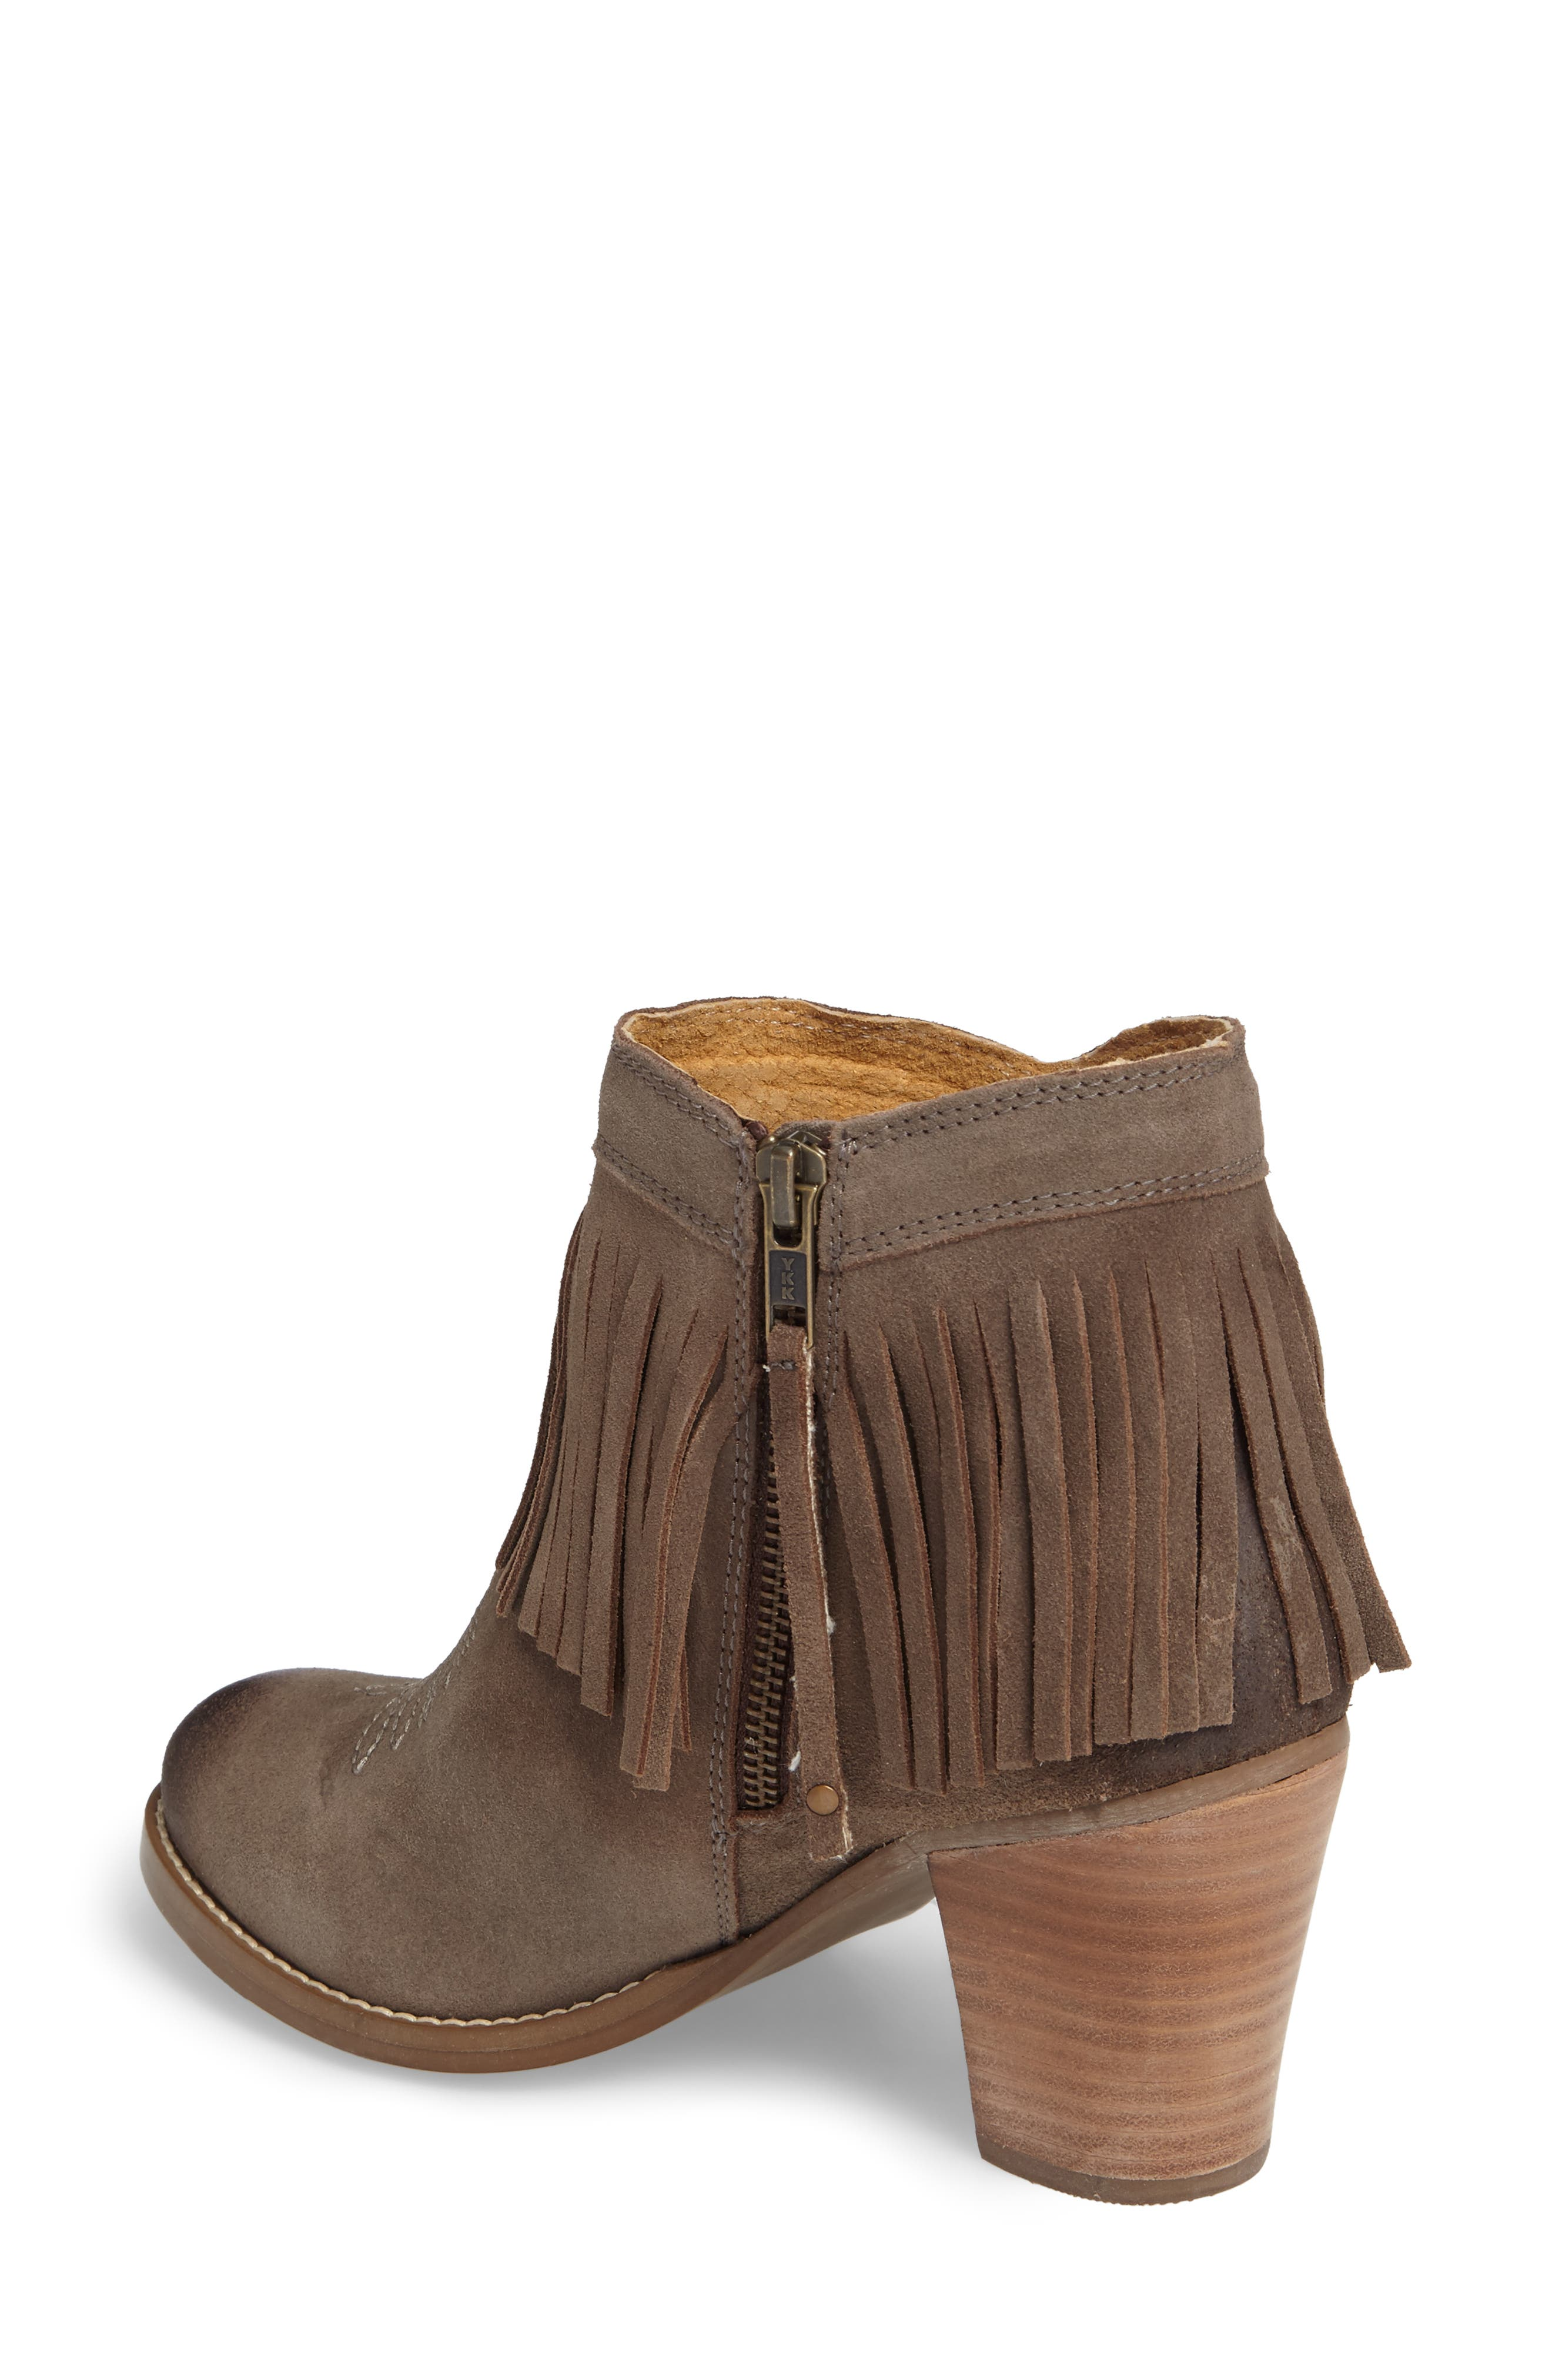 Unbridled Avery Bootie,                             Alternate thumbnail 2, color,                             200